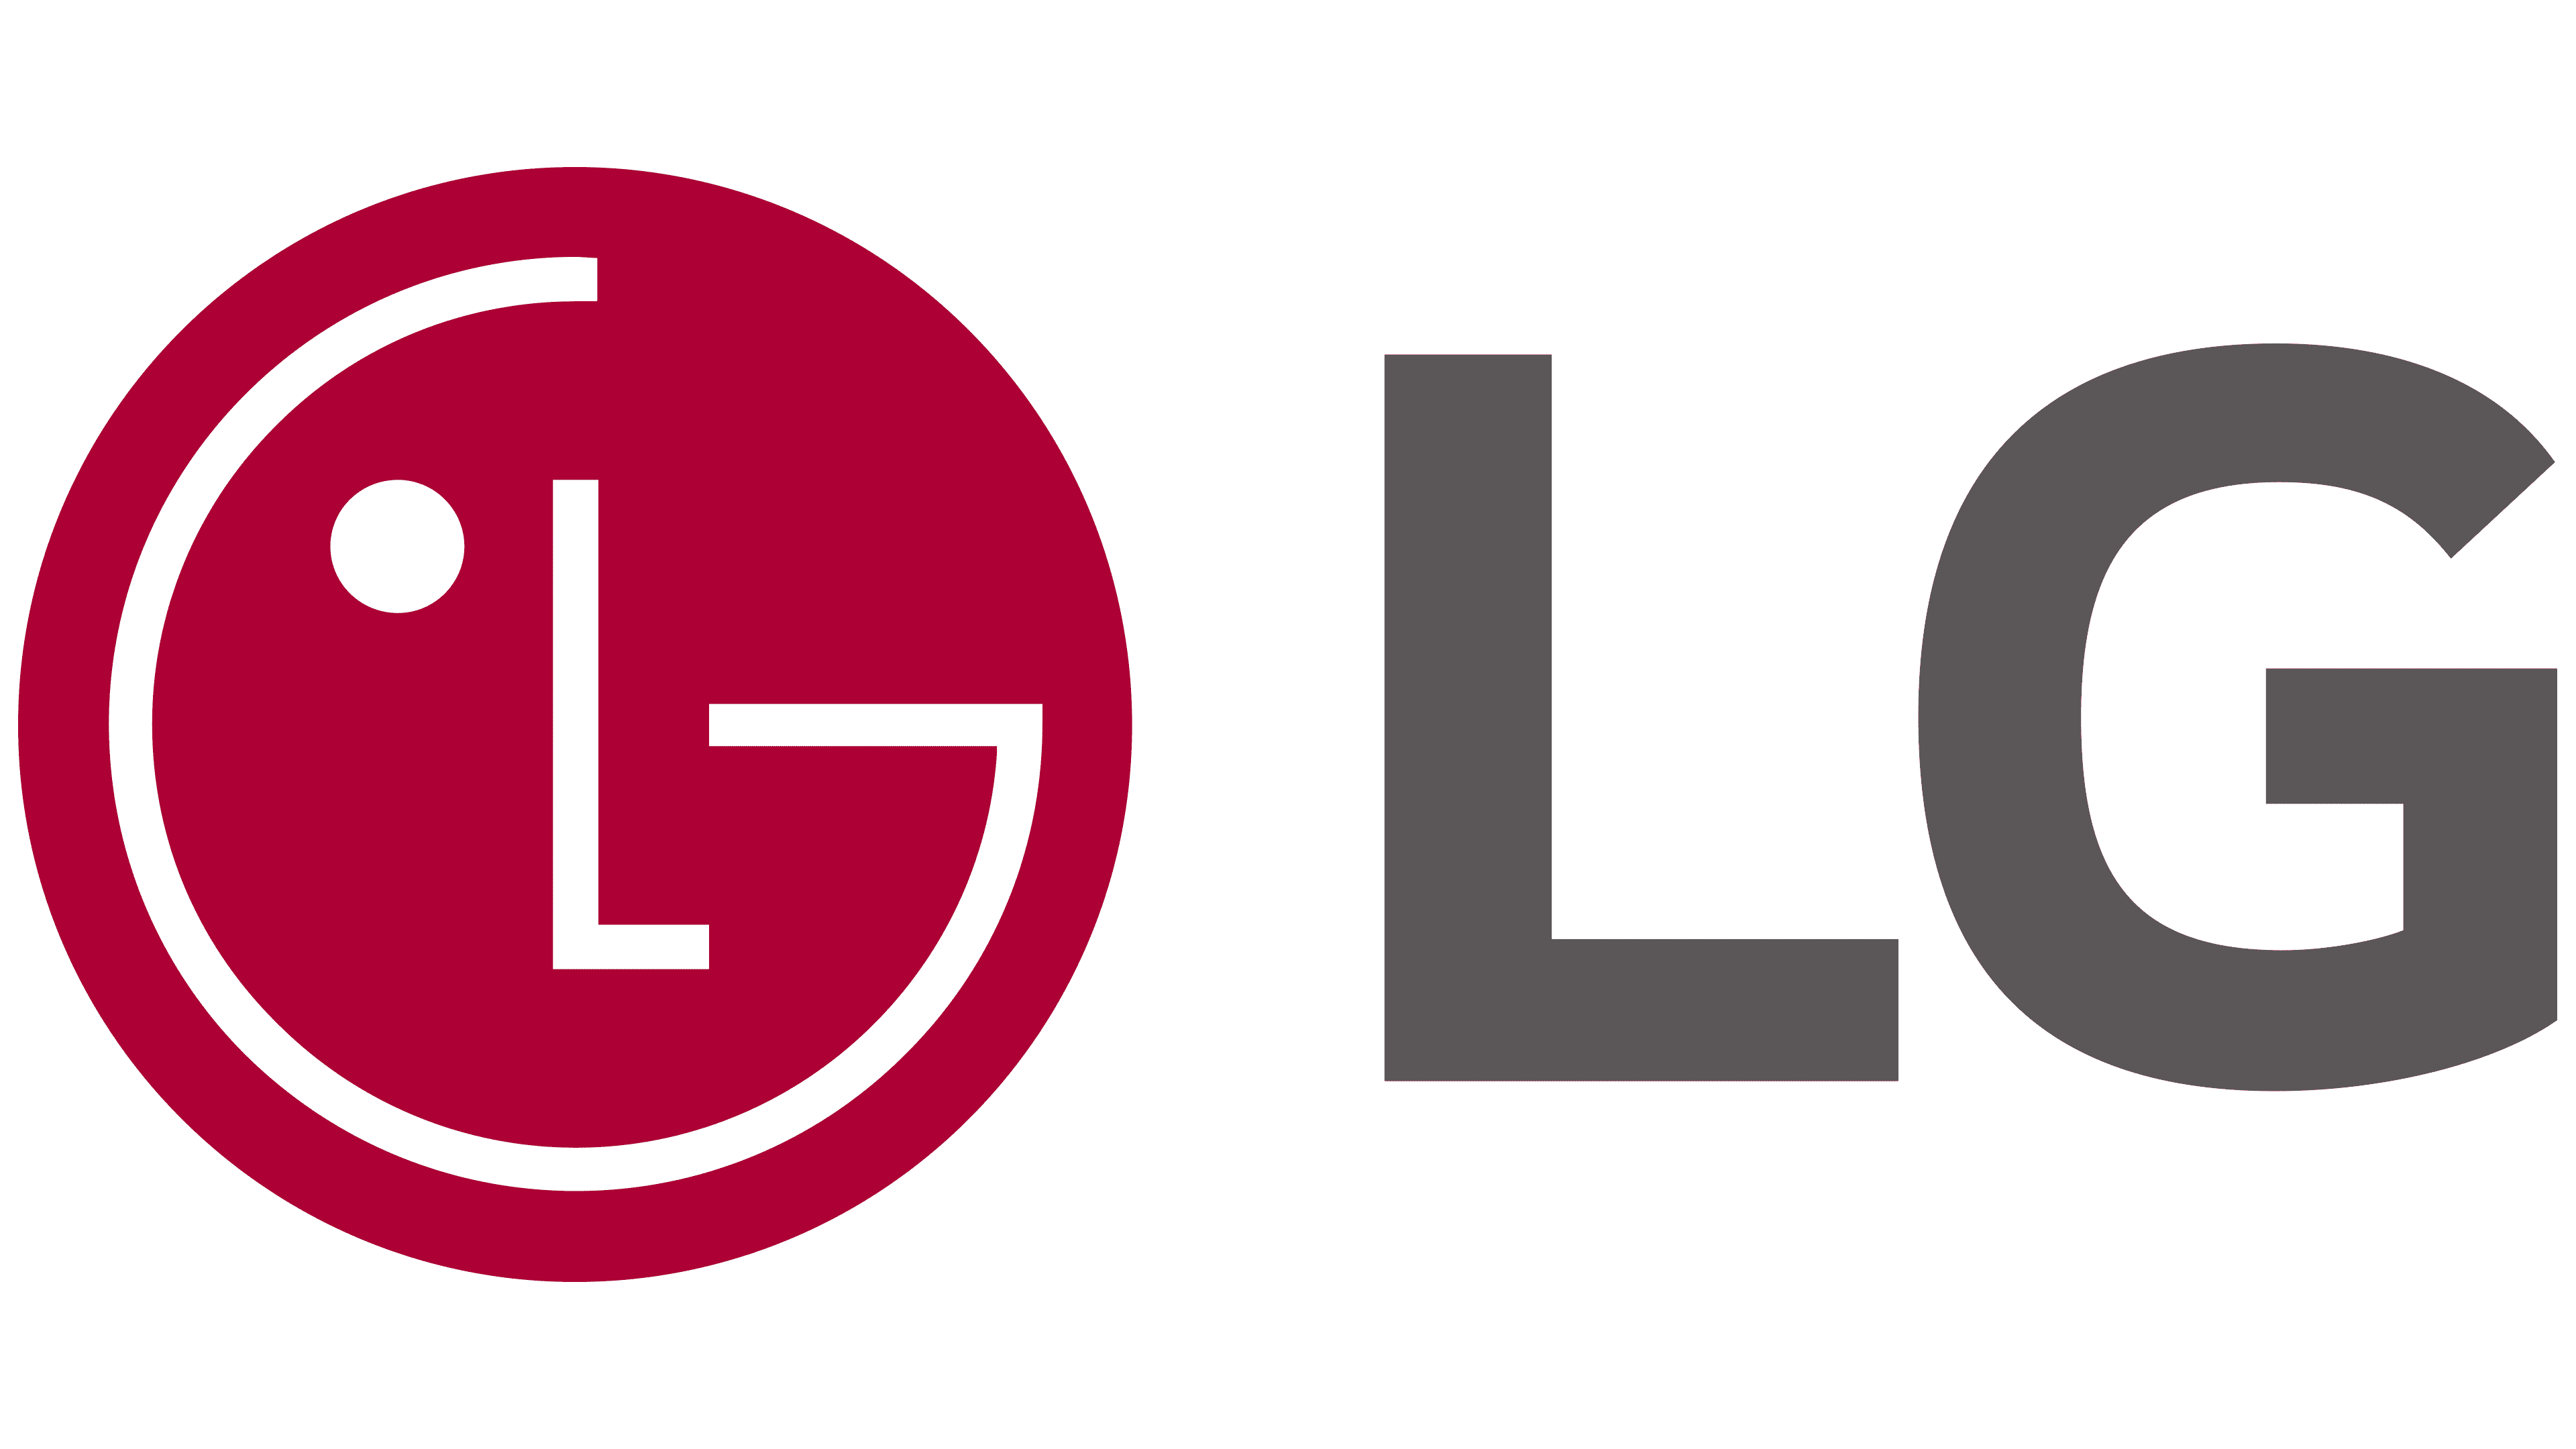 The logo for LG.